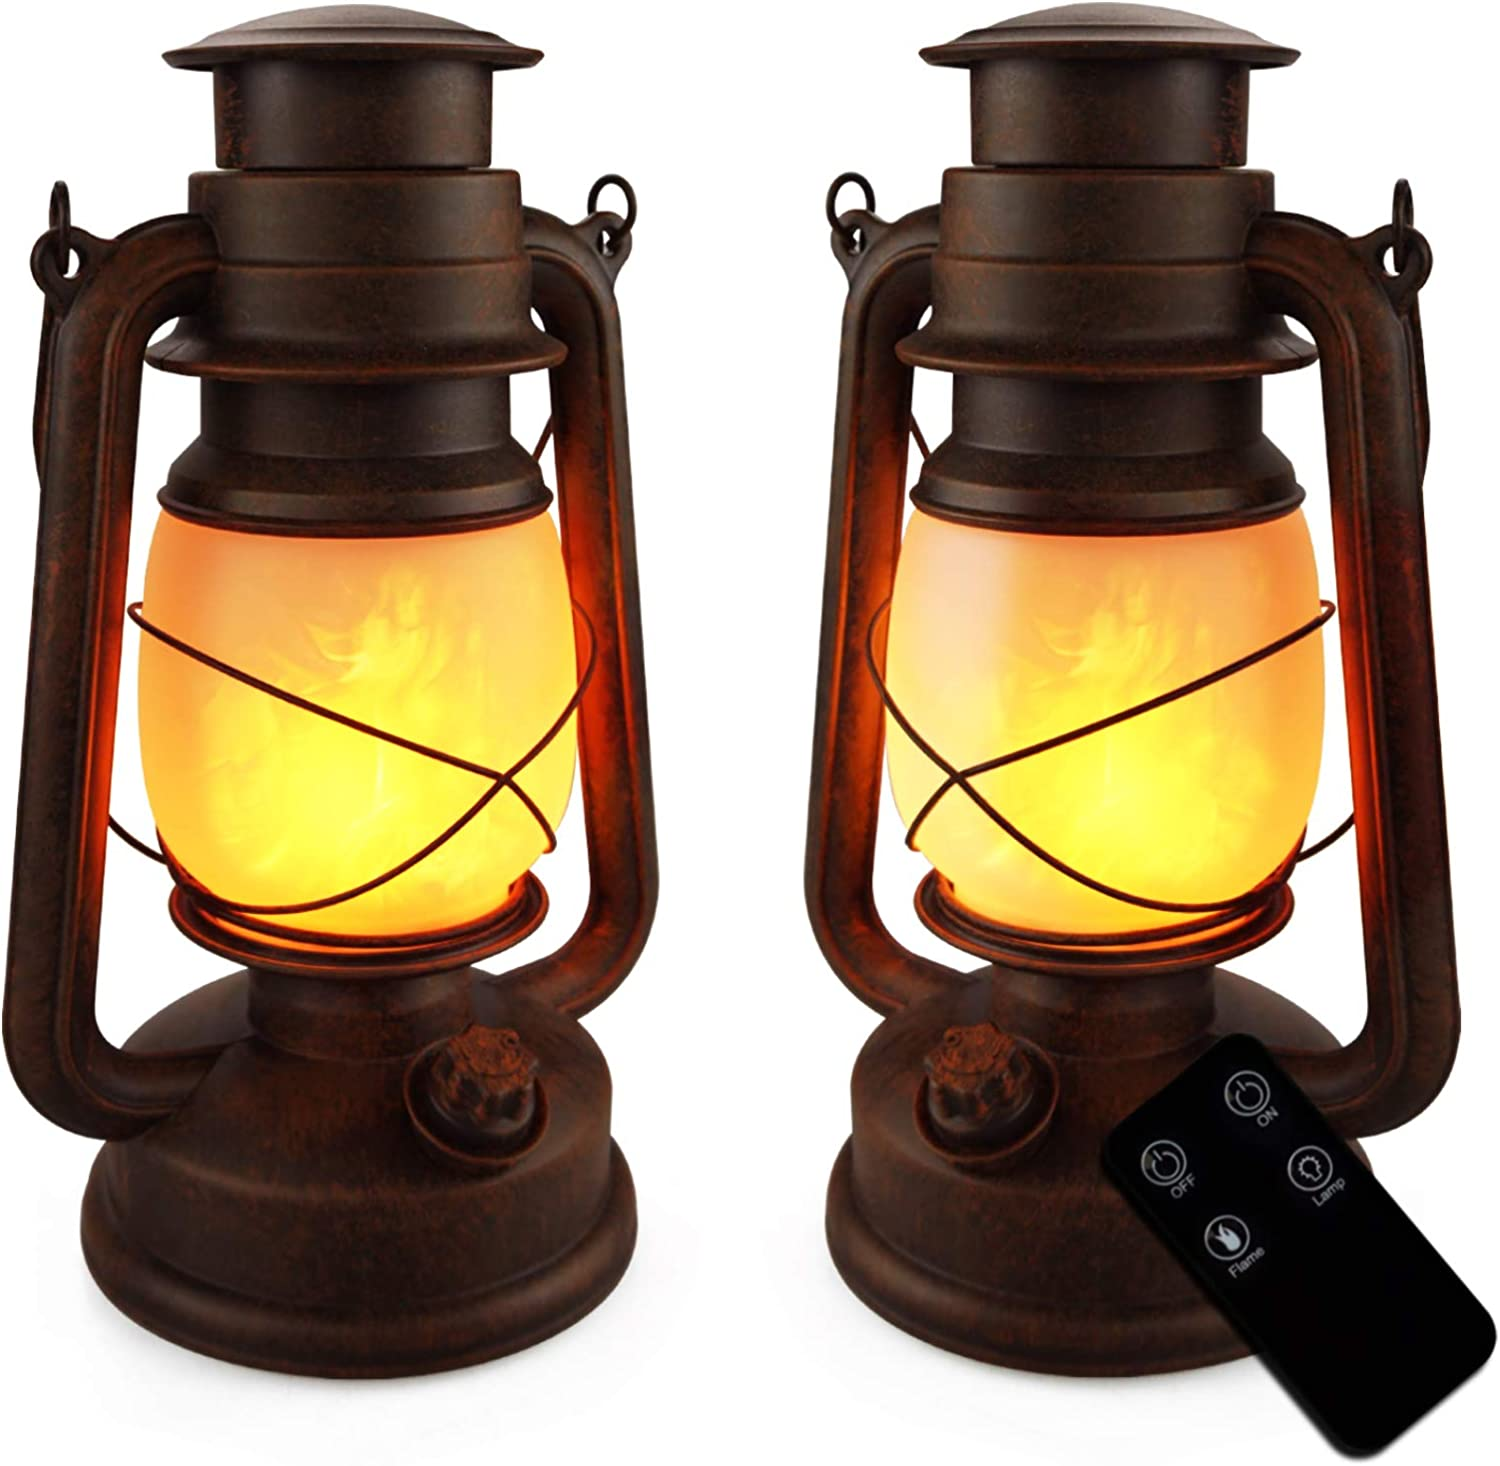 LED Vintage Lantern Battery Operated Flickering Flame Outdoor Hanging Lantern with Remote and Two Modes for Camping and Home Decor, 2 Pack